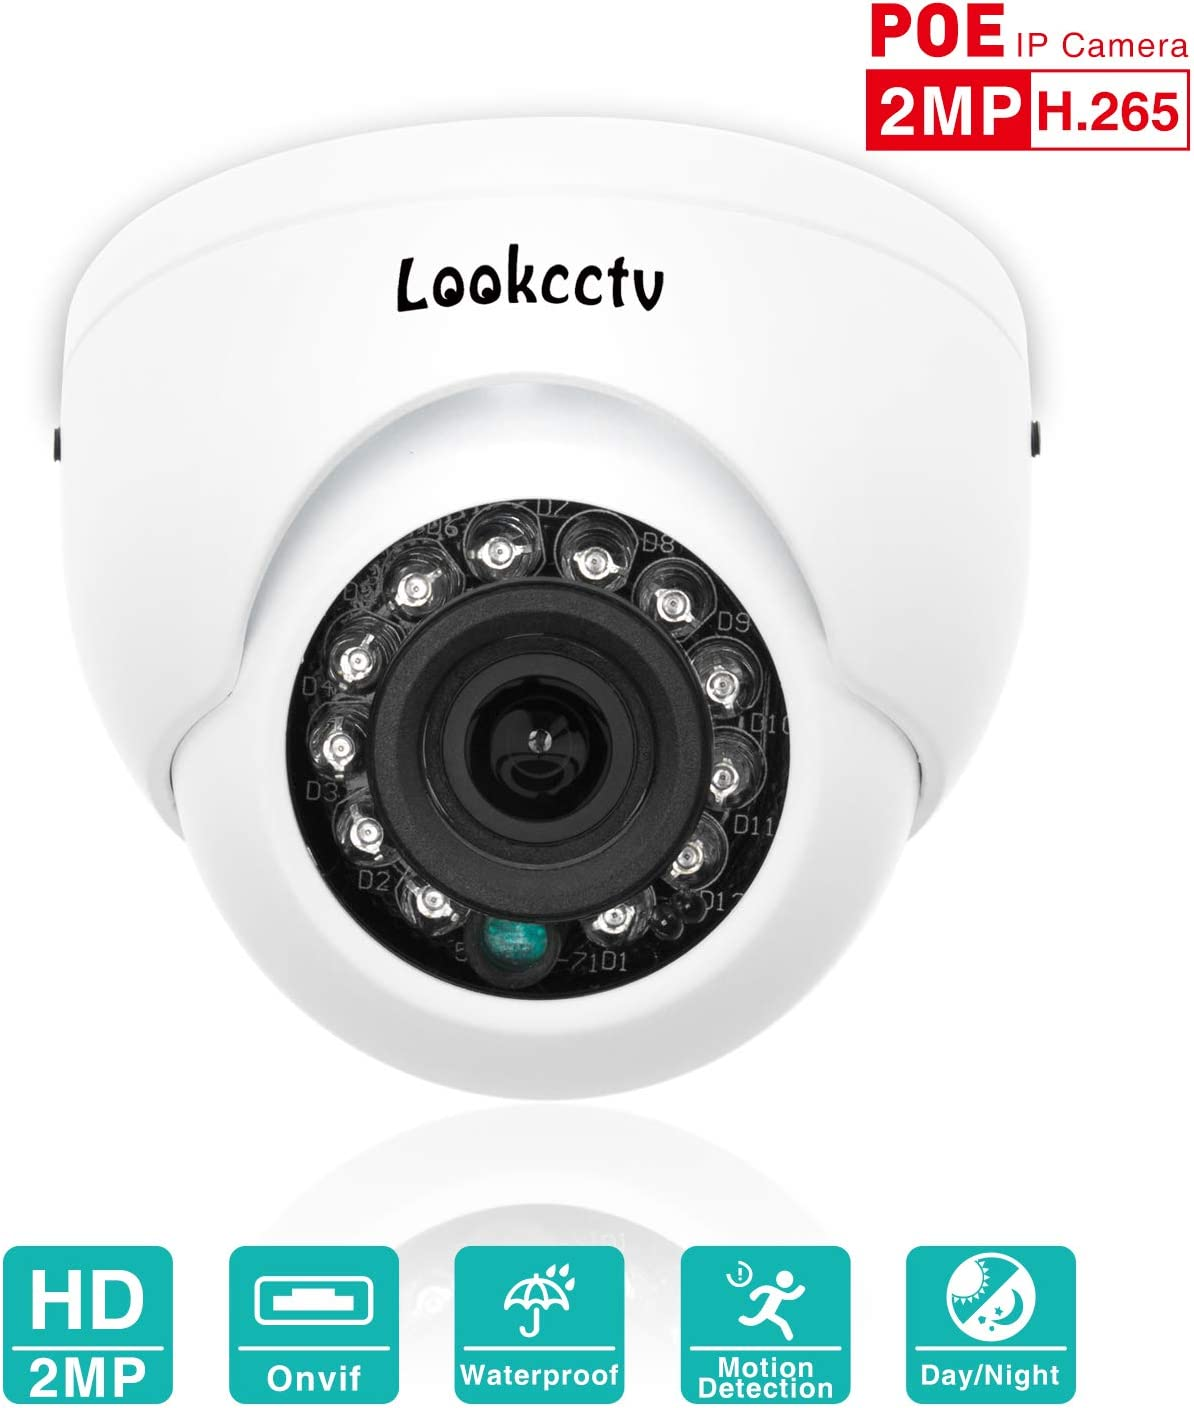 lookcctv IP Camera, 2MP Mini Dome POE Indoor Security Surveillance HD Camera Weatherproof,2.8mm Lens 33ft Night Vision IR Cut Day Night HD